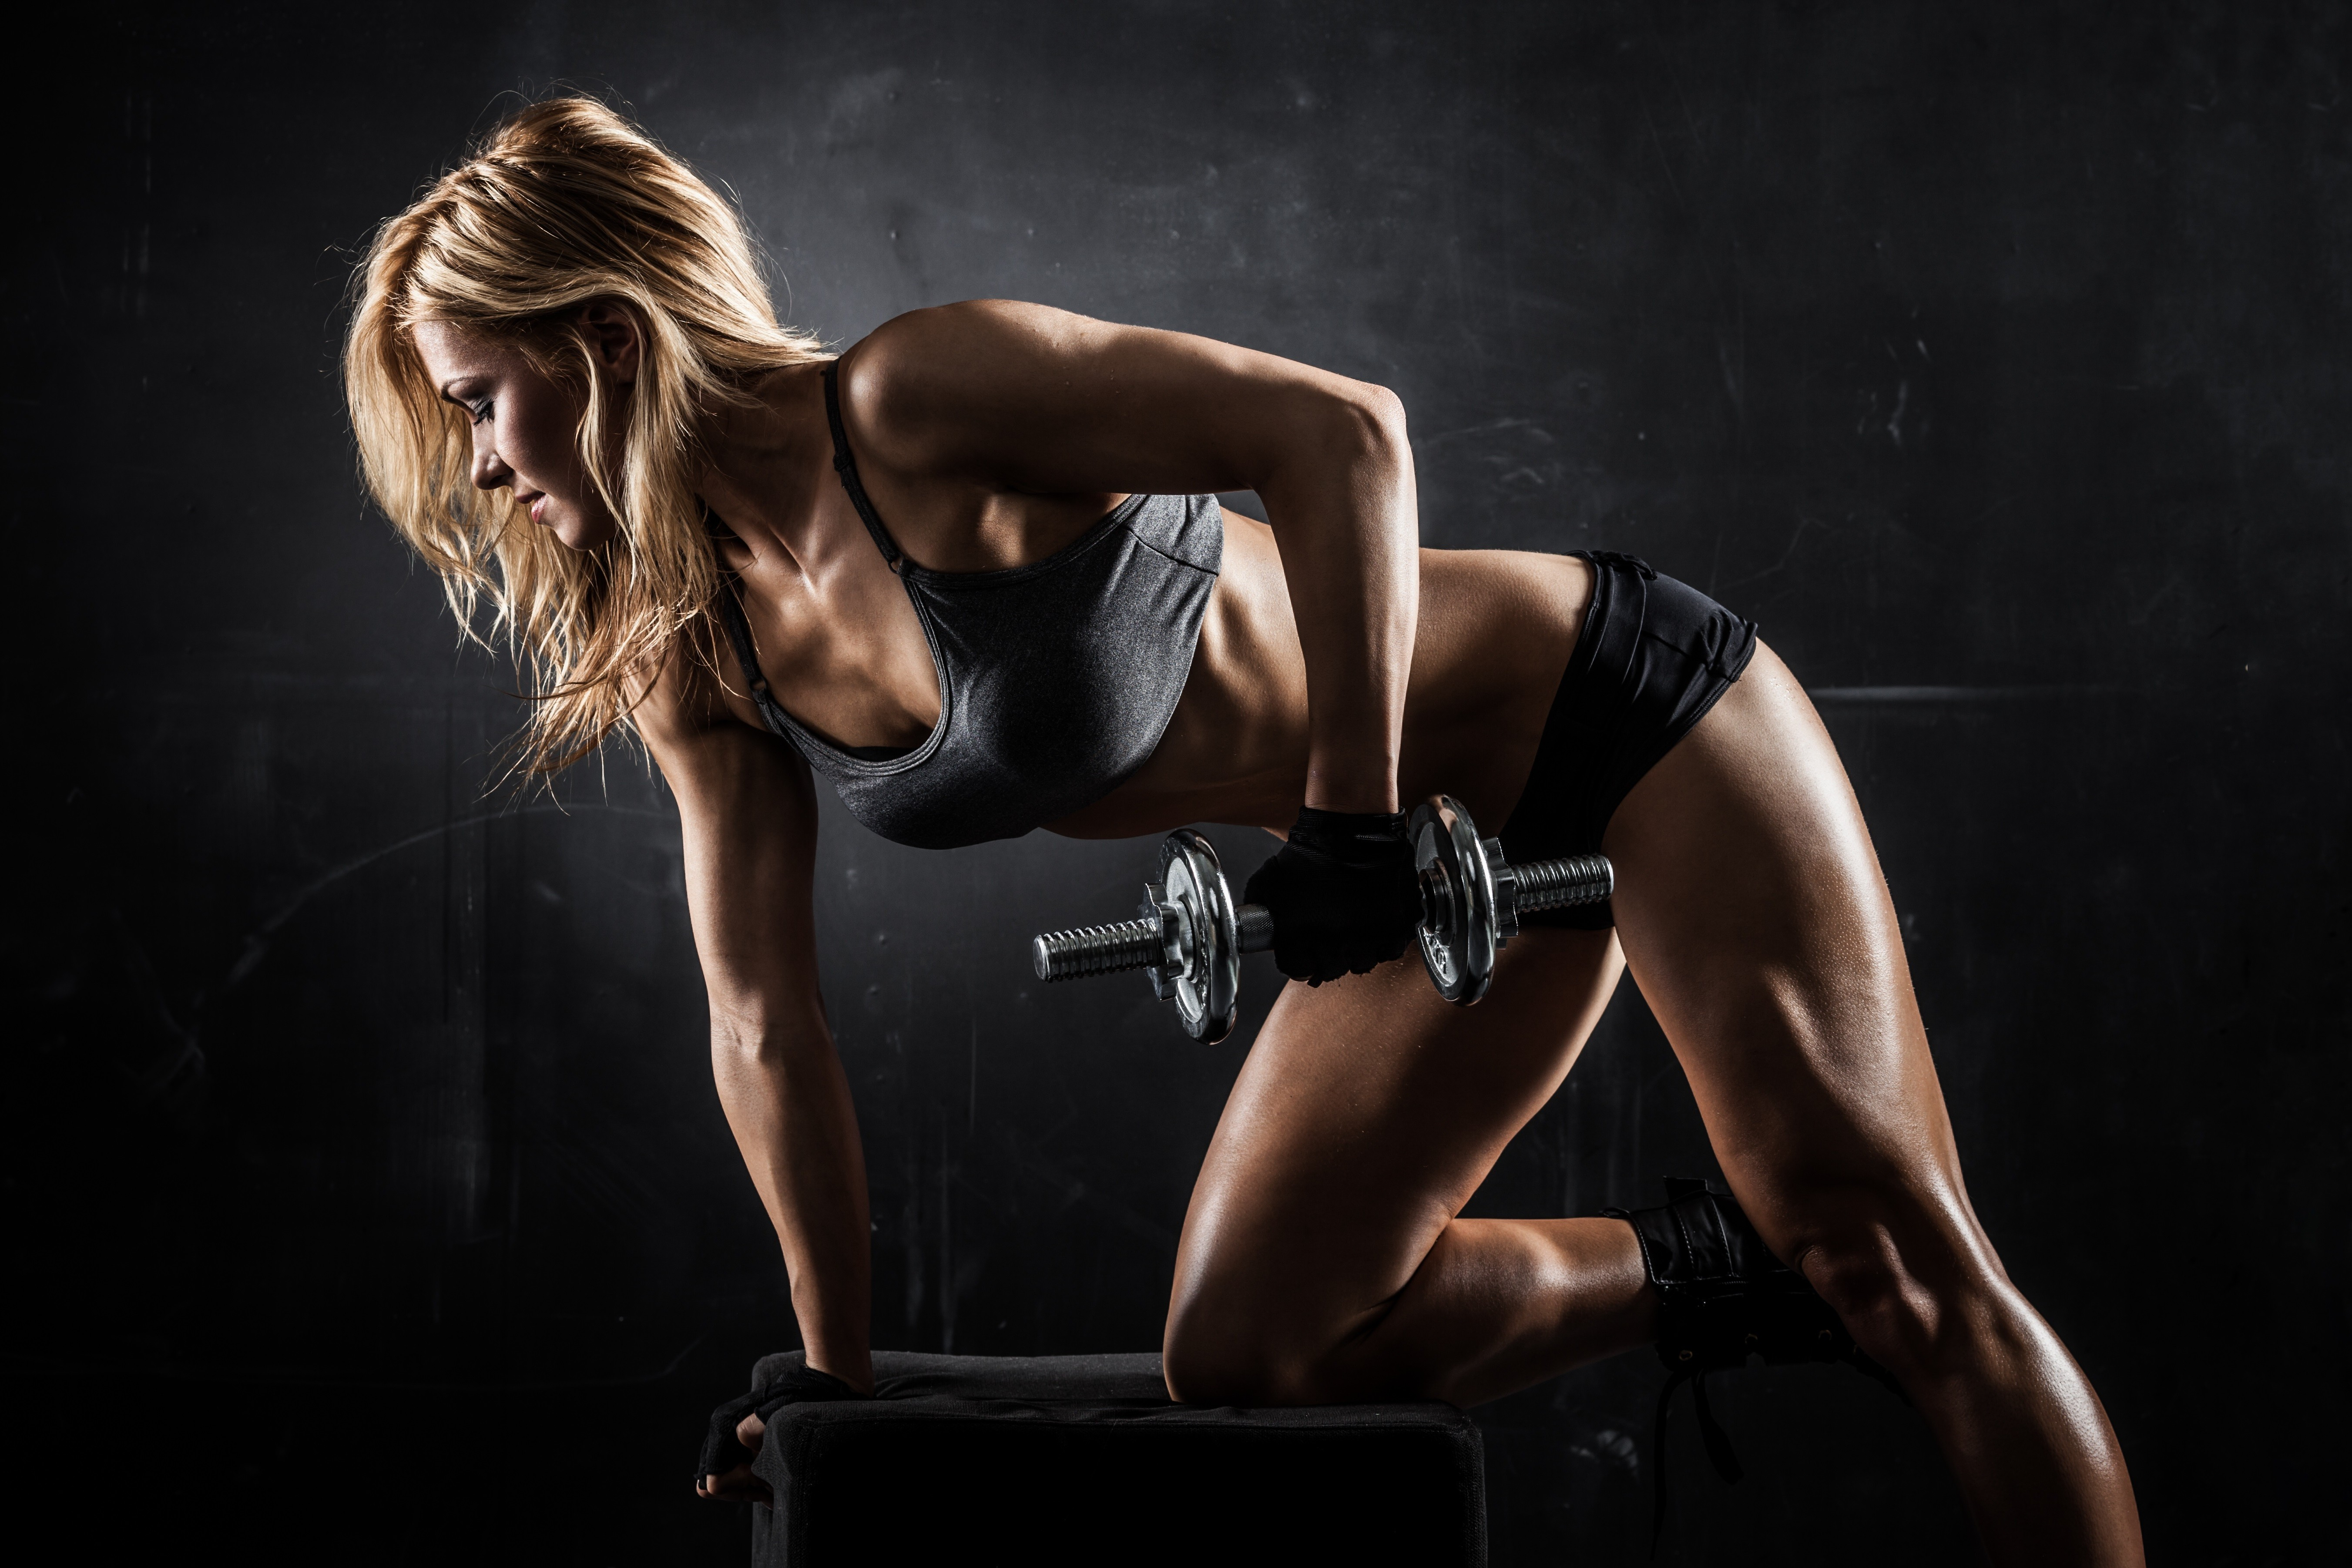 Fitness Wallpapers For Android ~ Sdeerwallpaper